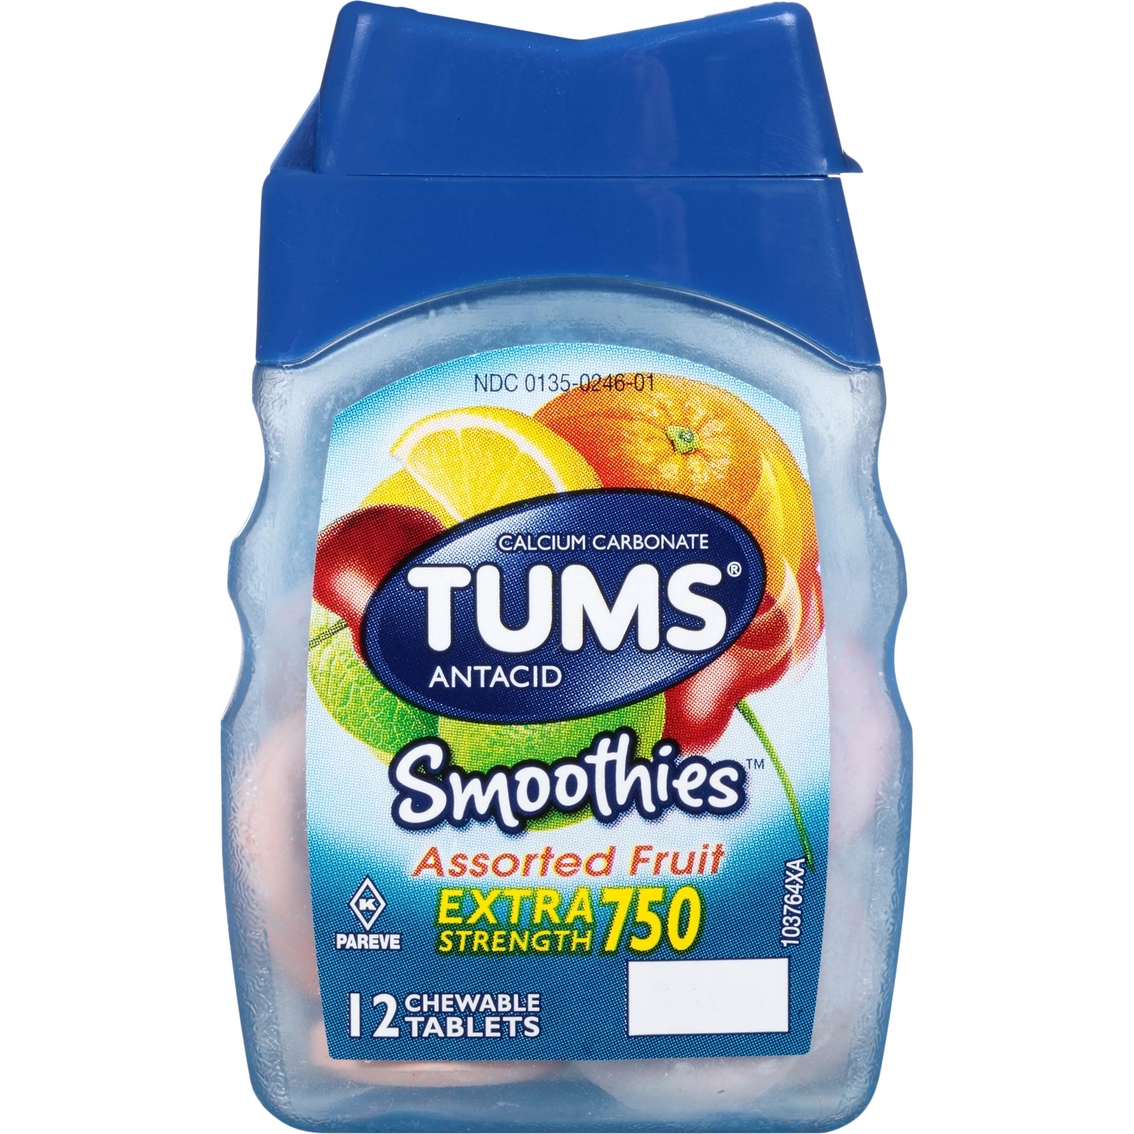 tums smoothies assorted fruit chewable tablets 12 ct.   digestive